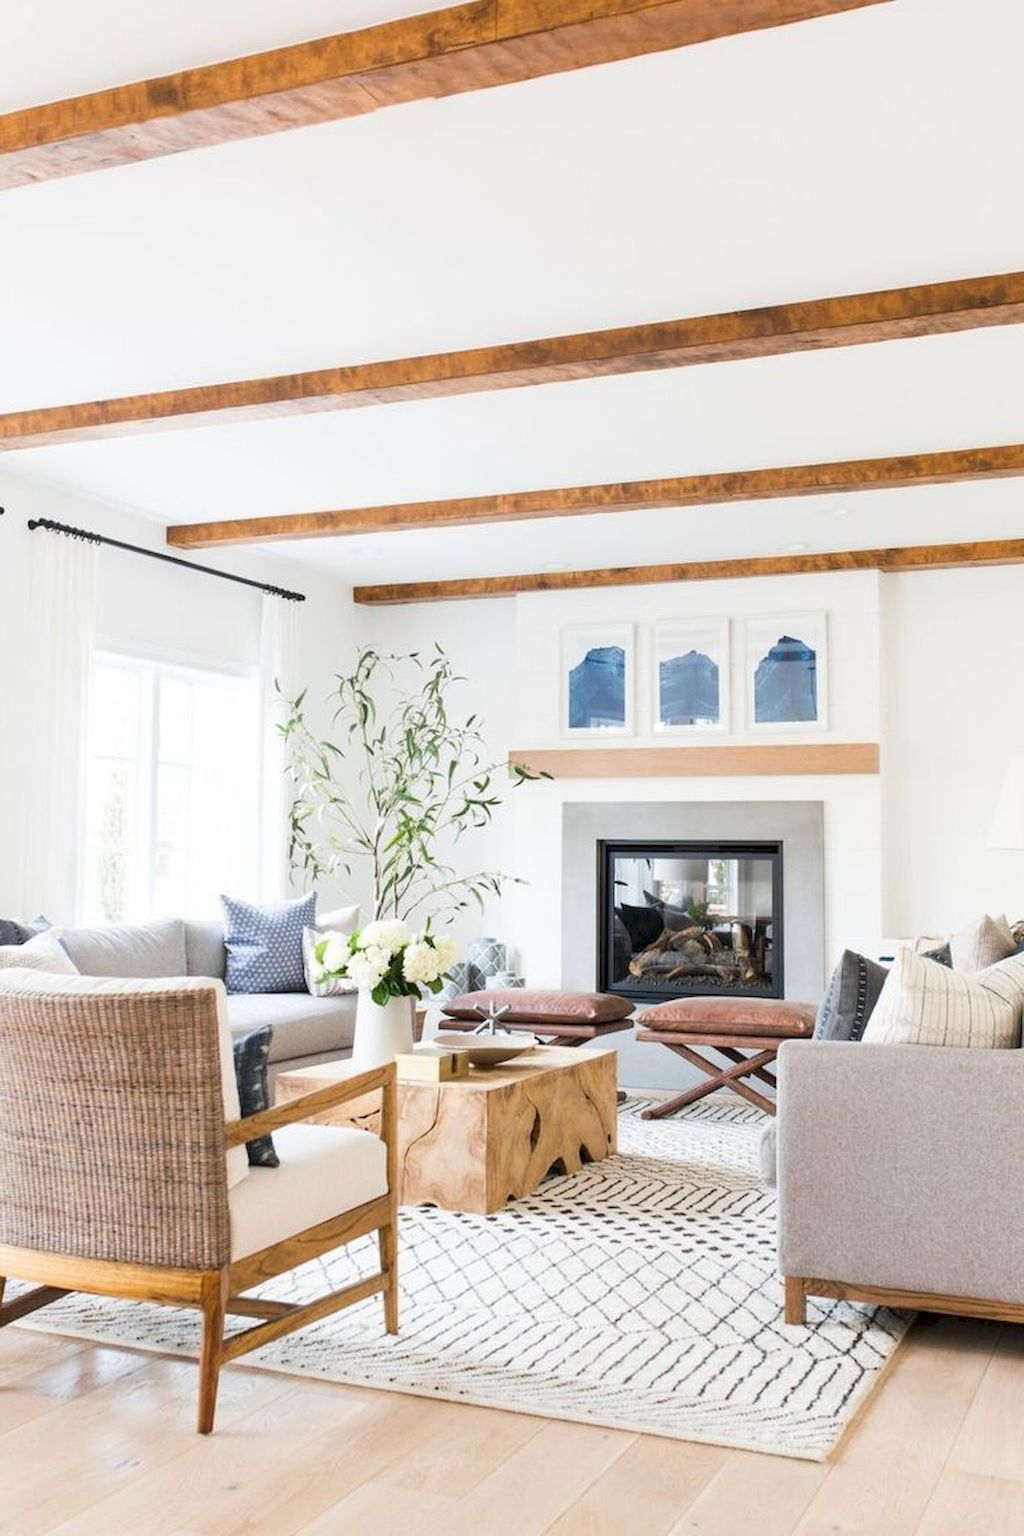 Comfy Farmhouse Living Room Designs To Steal: 60 Comfy Farmhouse Living Room Designs To Steal